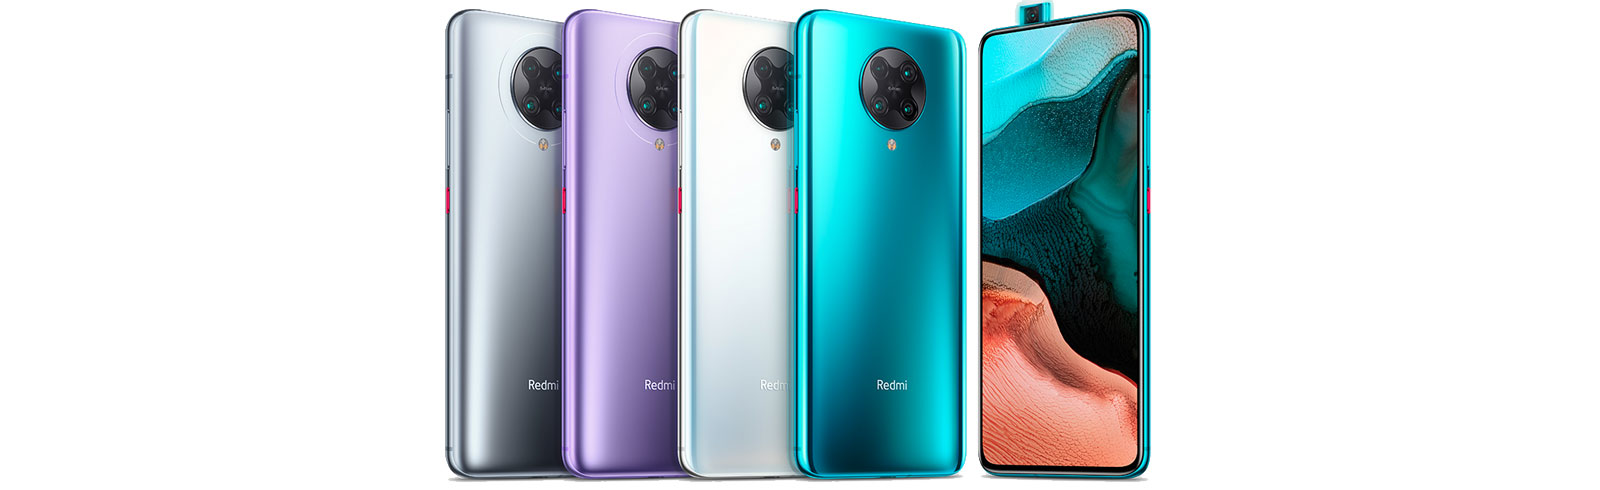 Xiaomi presented the Redmi K30 Pro and Redmi K30 Pro Zoom with 5G support